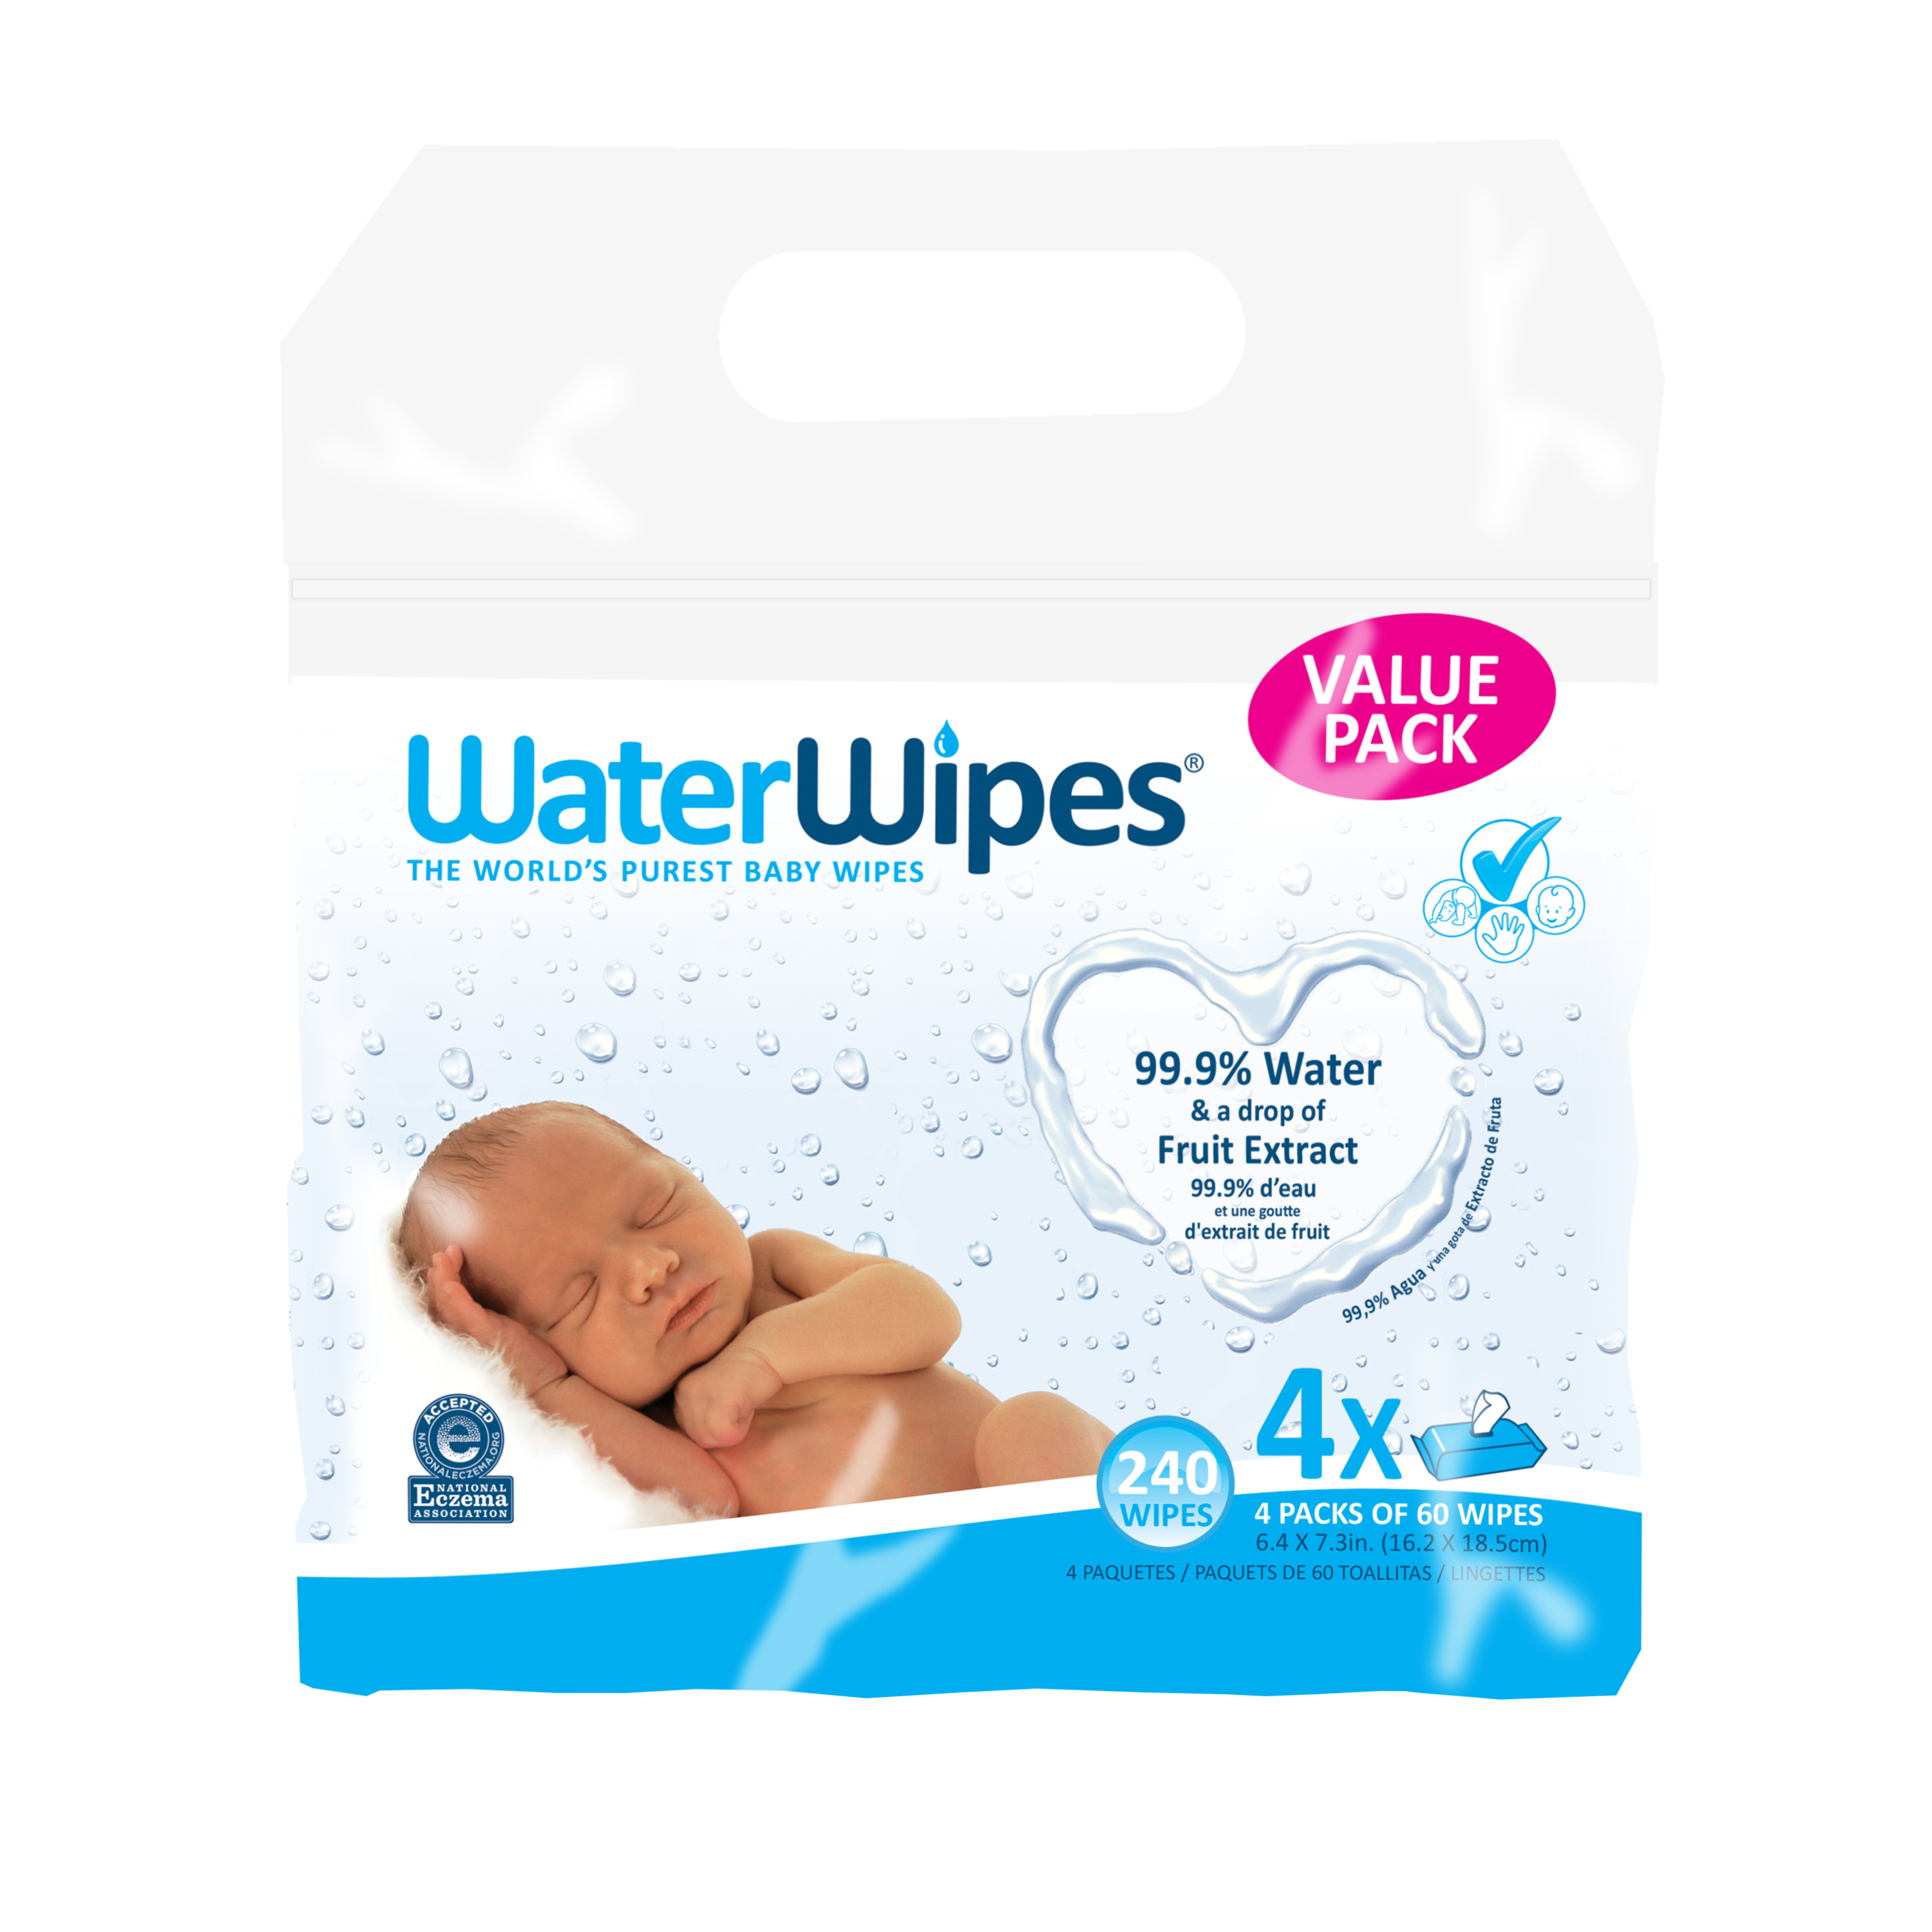 WaterWipes Sensitive Baby Wipes, 4 Packs of 60 (240 count)